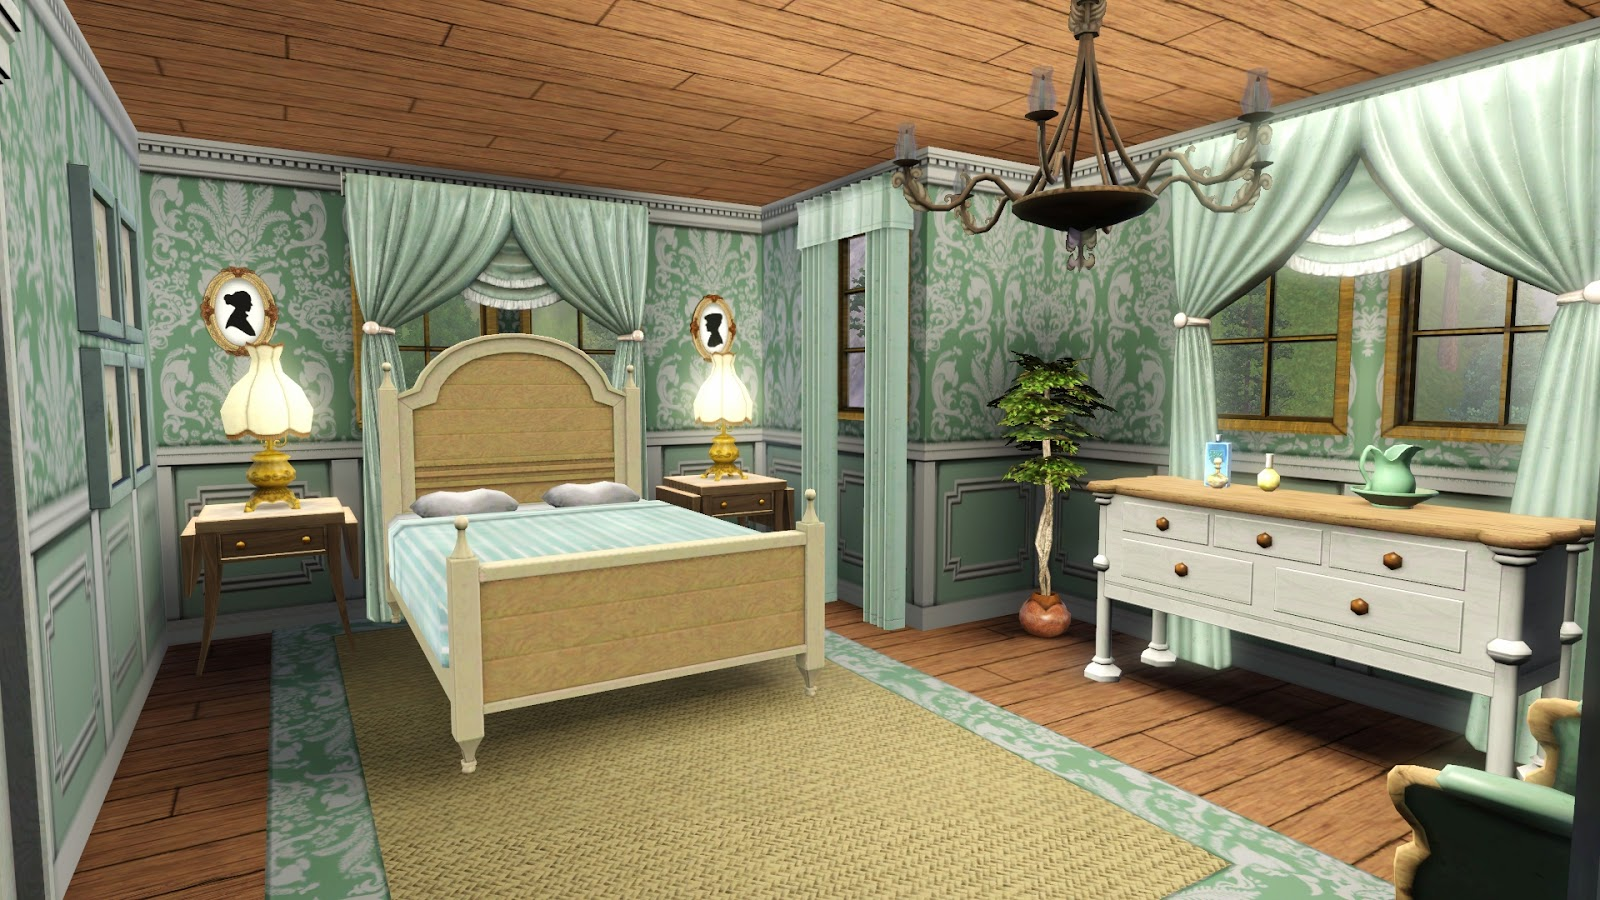 Sims 3 Bedroom Simply Ruthless Downloads Sims 3 Lots